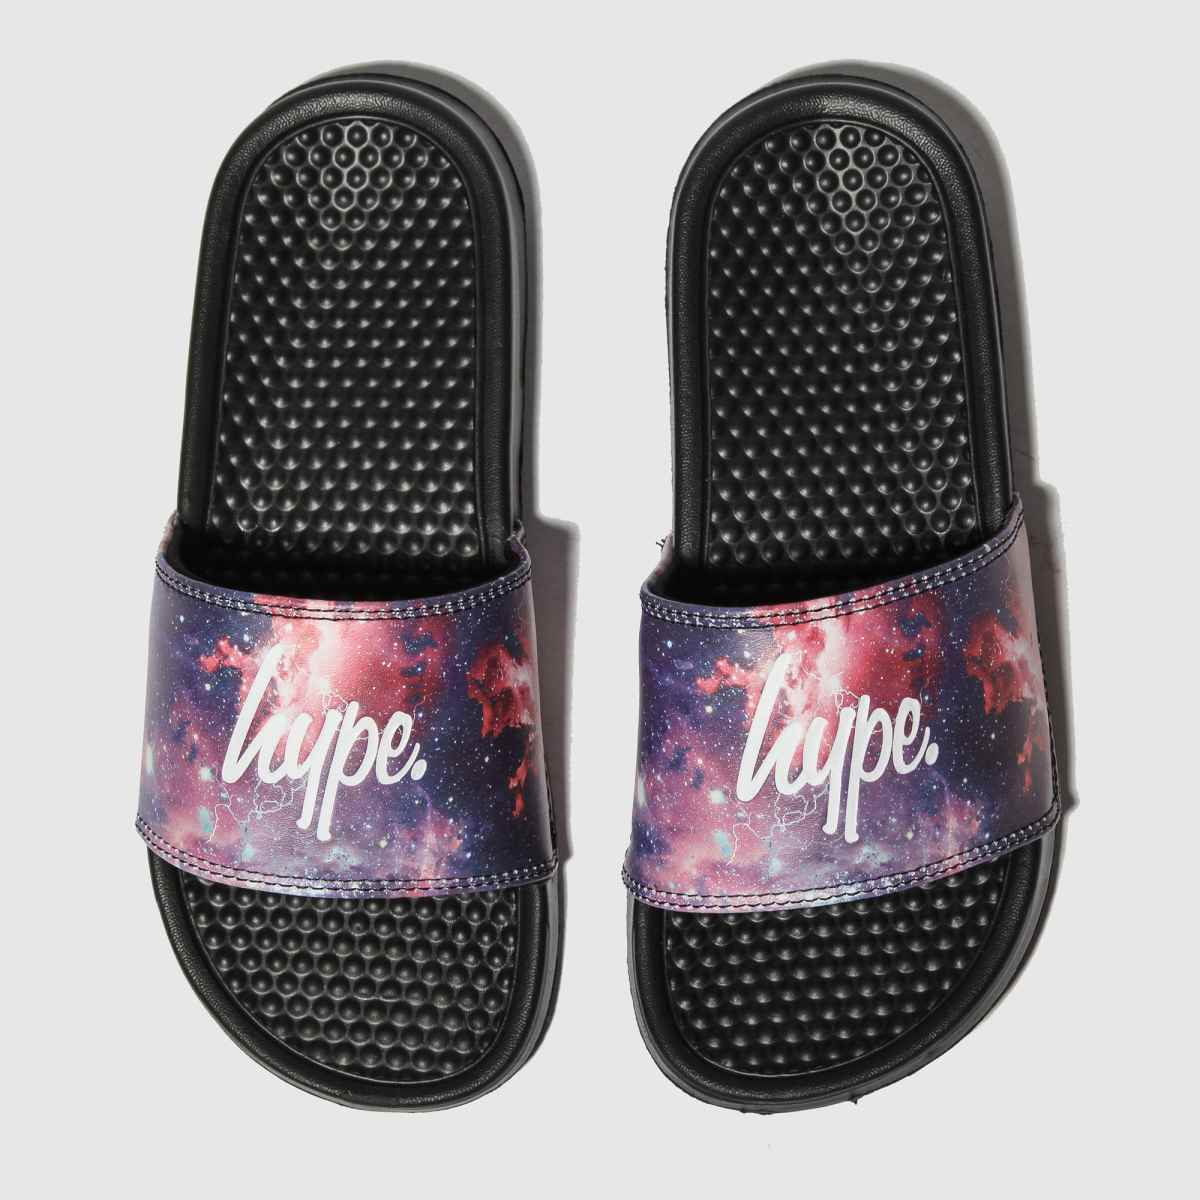 Hype Black & Purple Fired Up Sliders Sandals Youth